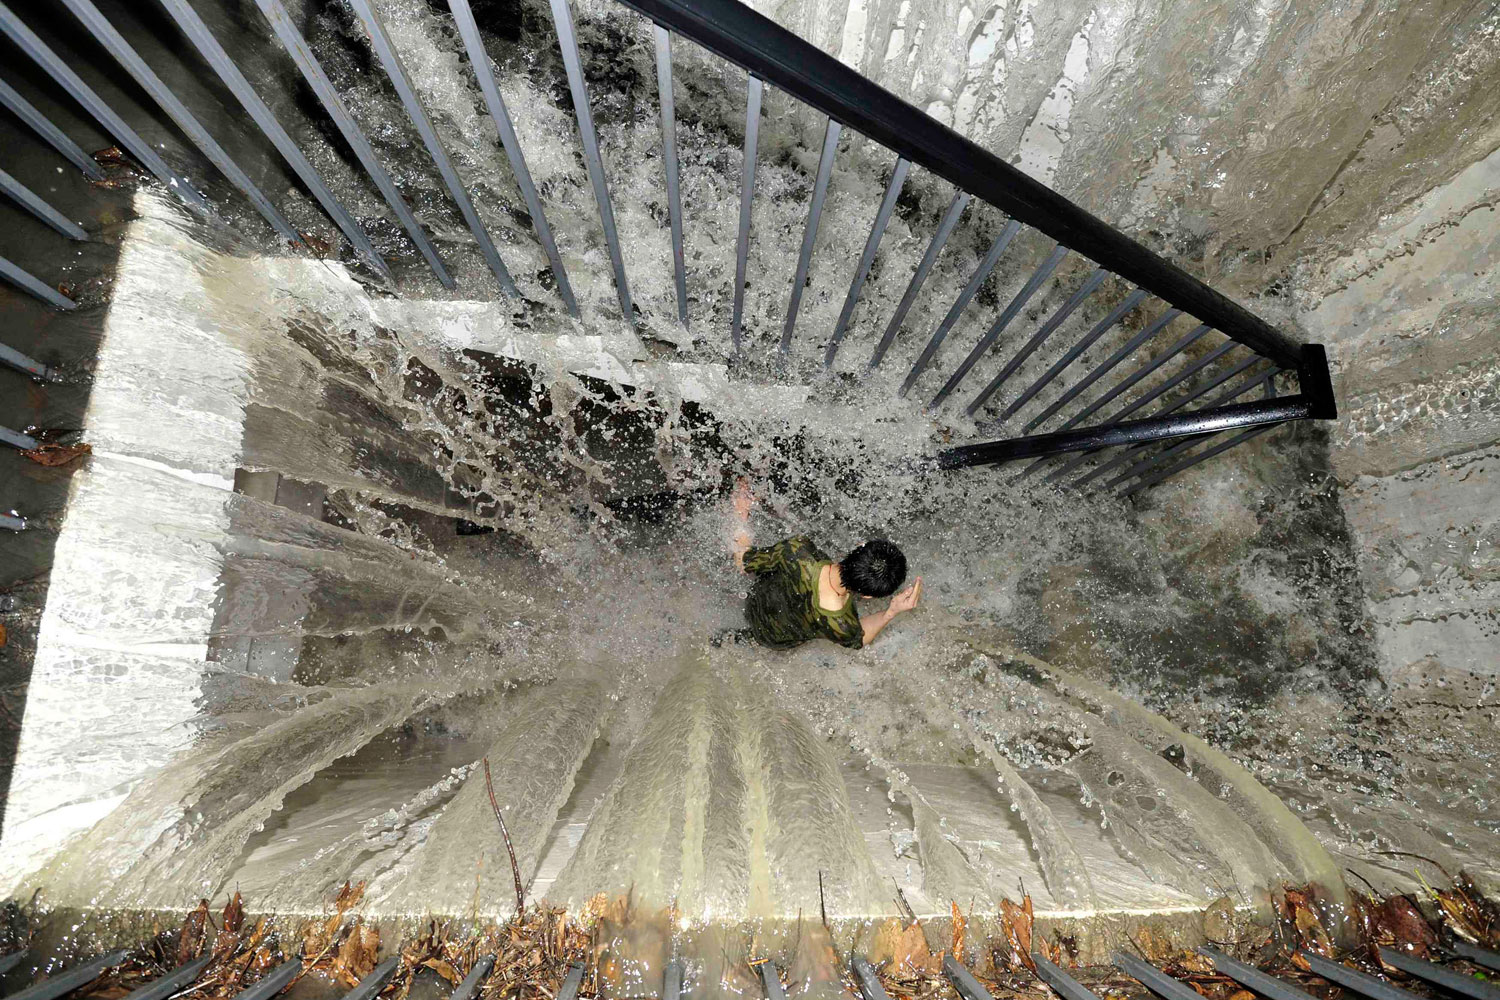 July 3, 2011. A resident runs on a flooded stairway as floodwater pours into an underground garage amid heavy rainfalls in Chengdu, Sichuan province. Heavy downpours hit Chengdu on Sunday, flooding roads and breaking down city traffic.